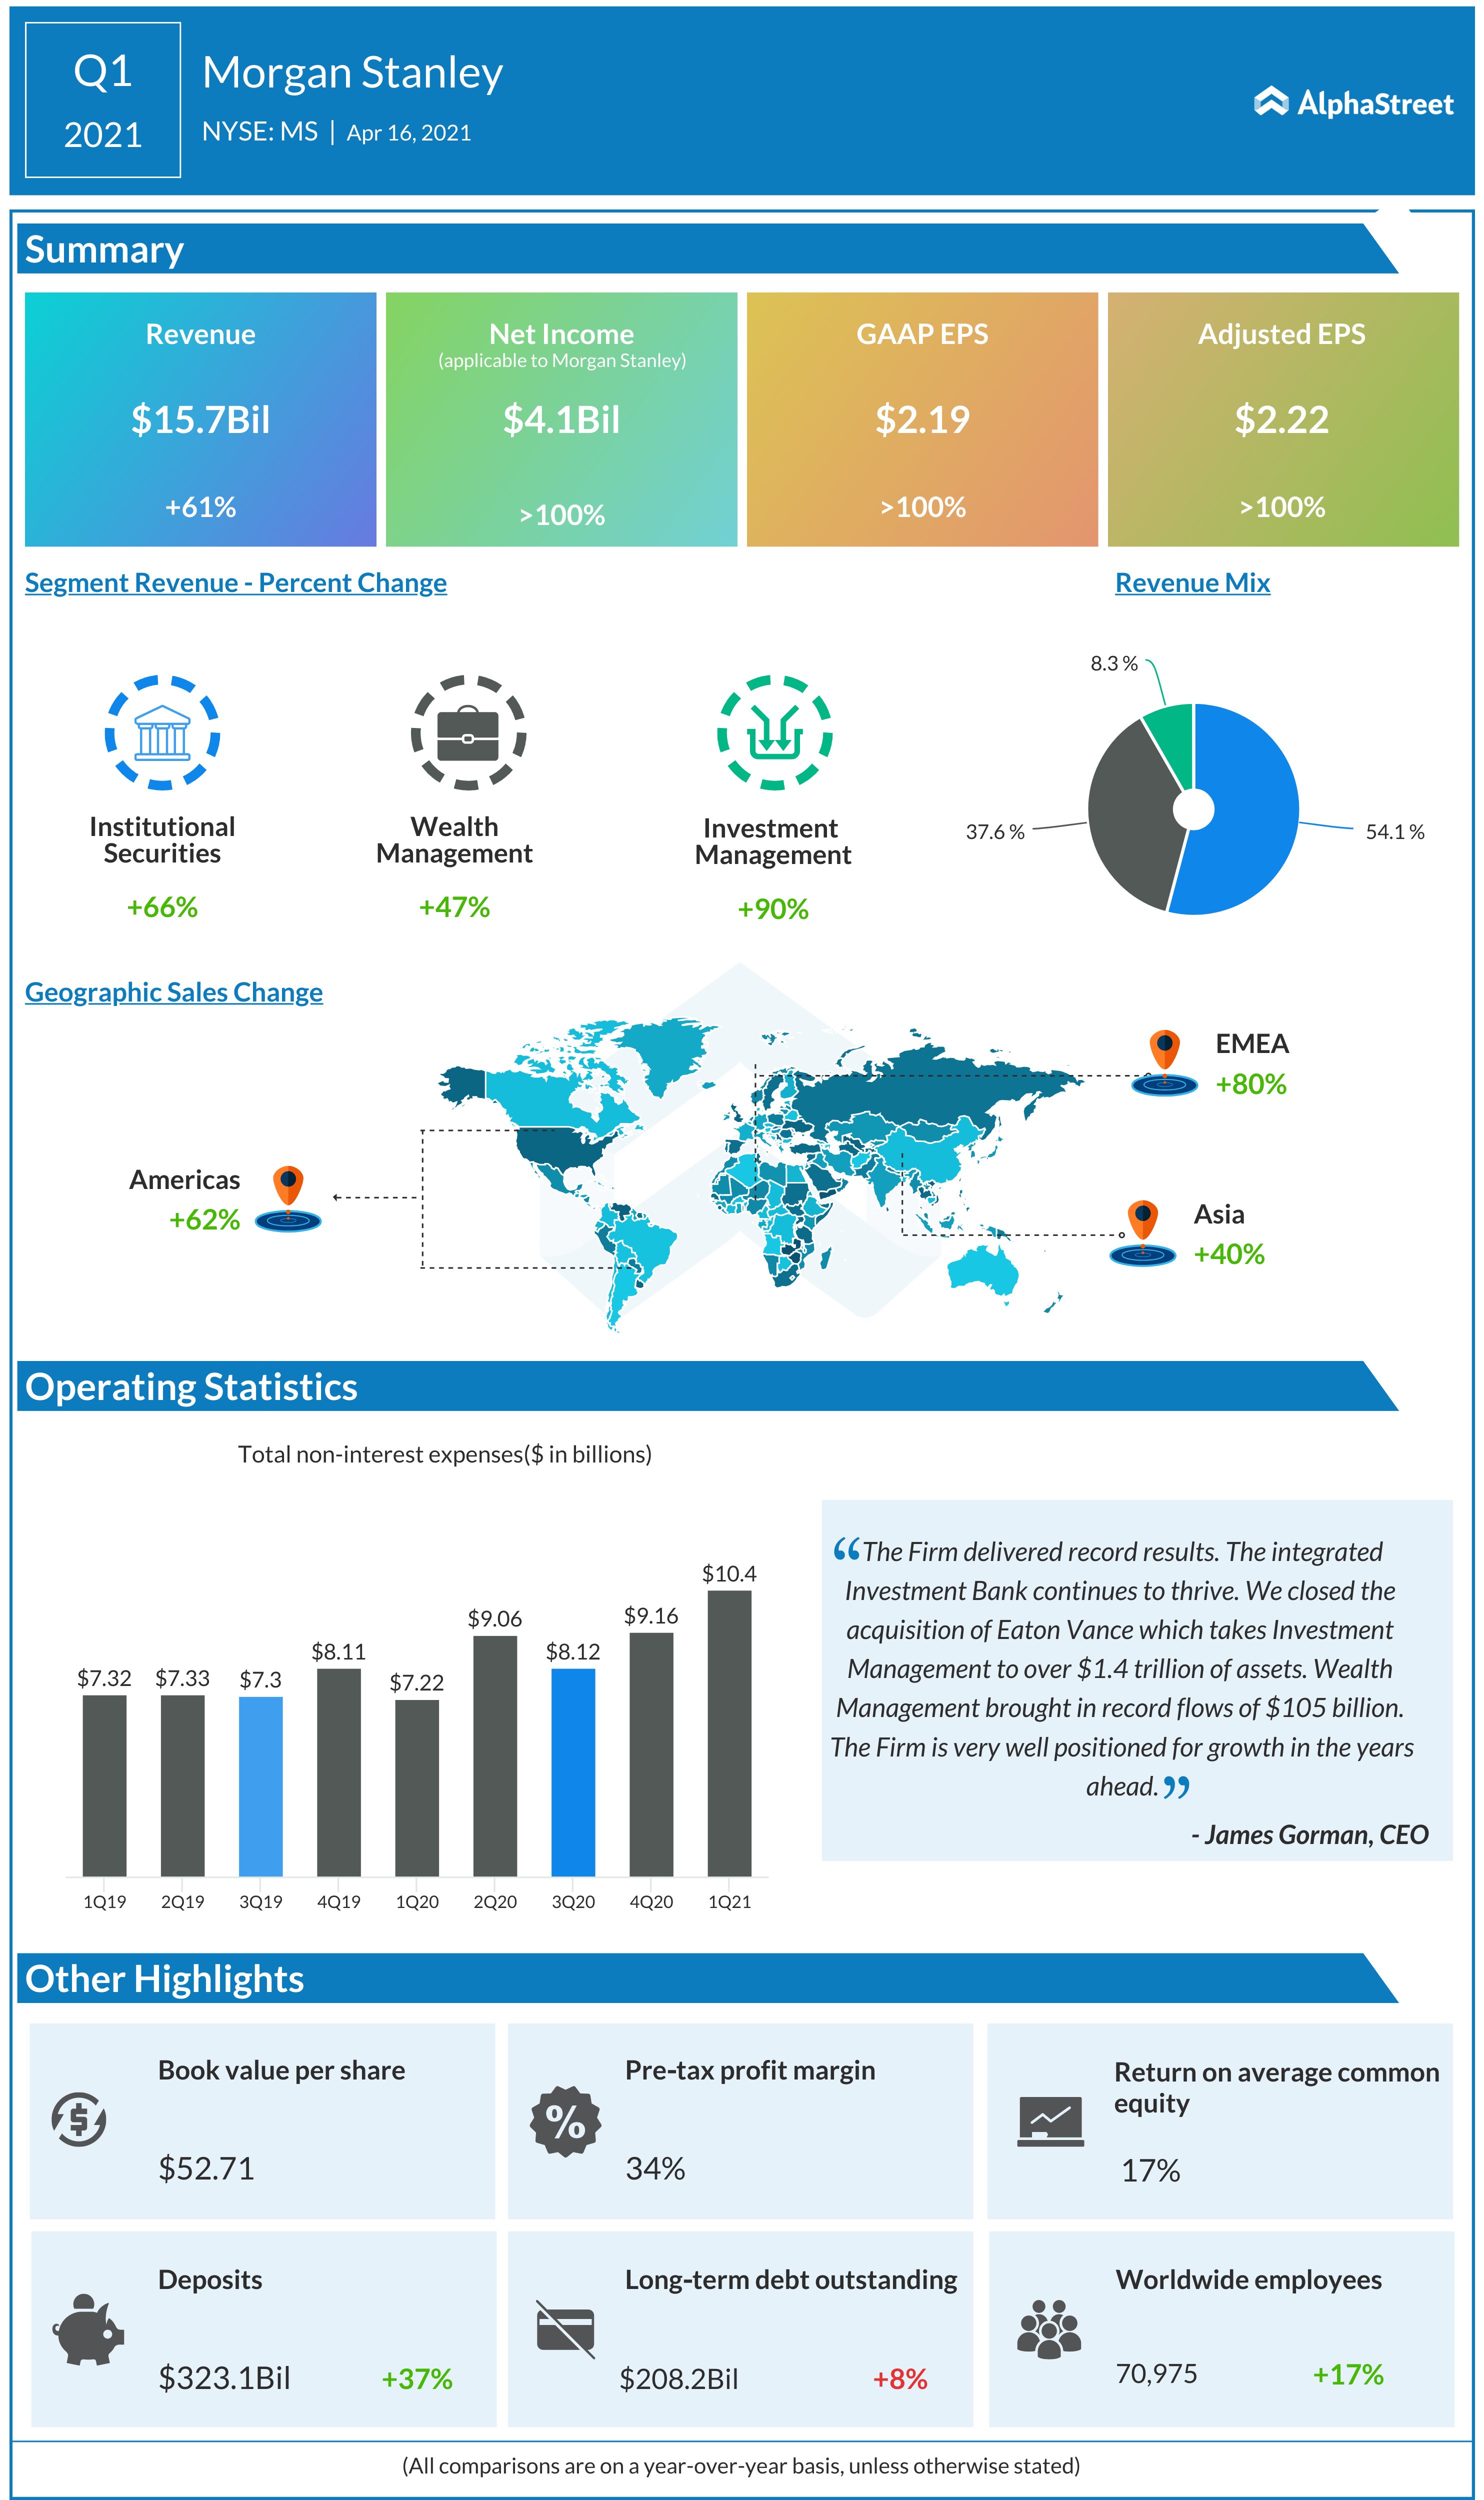 Morgan Stanley Q1 2021 earnings infographic